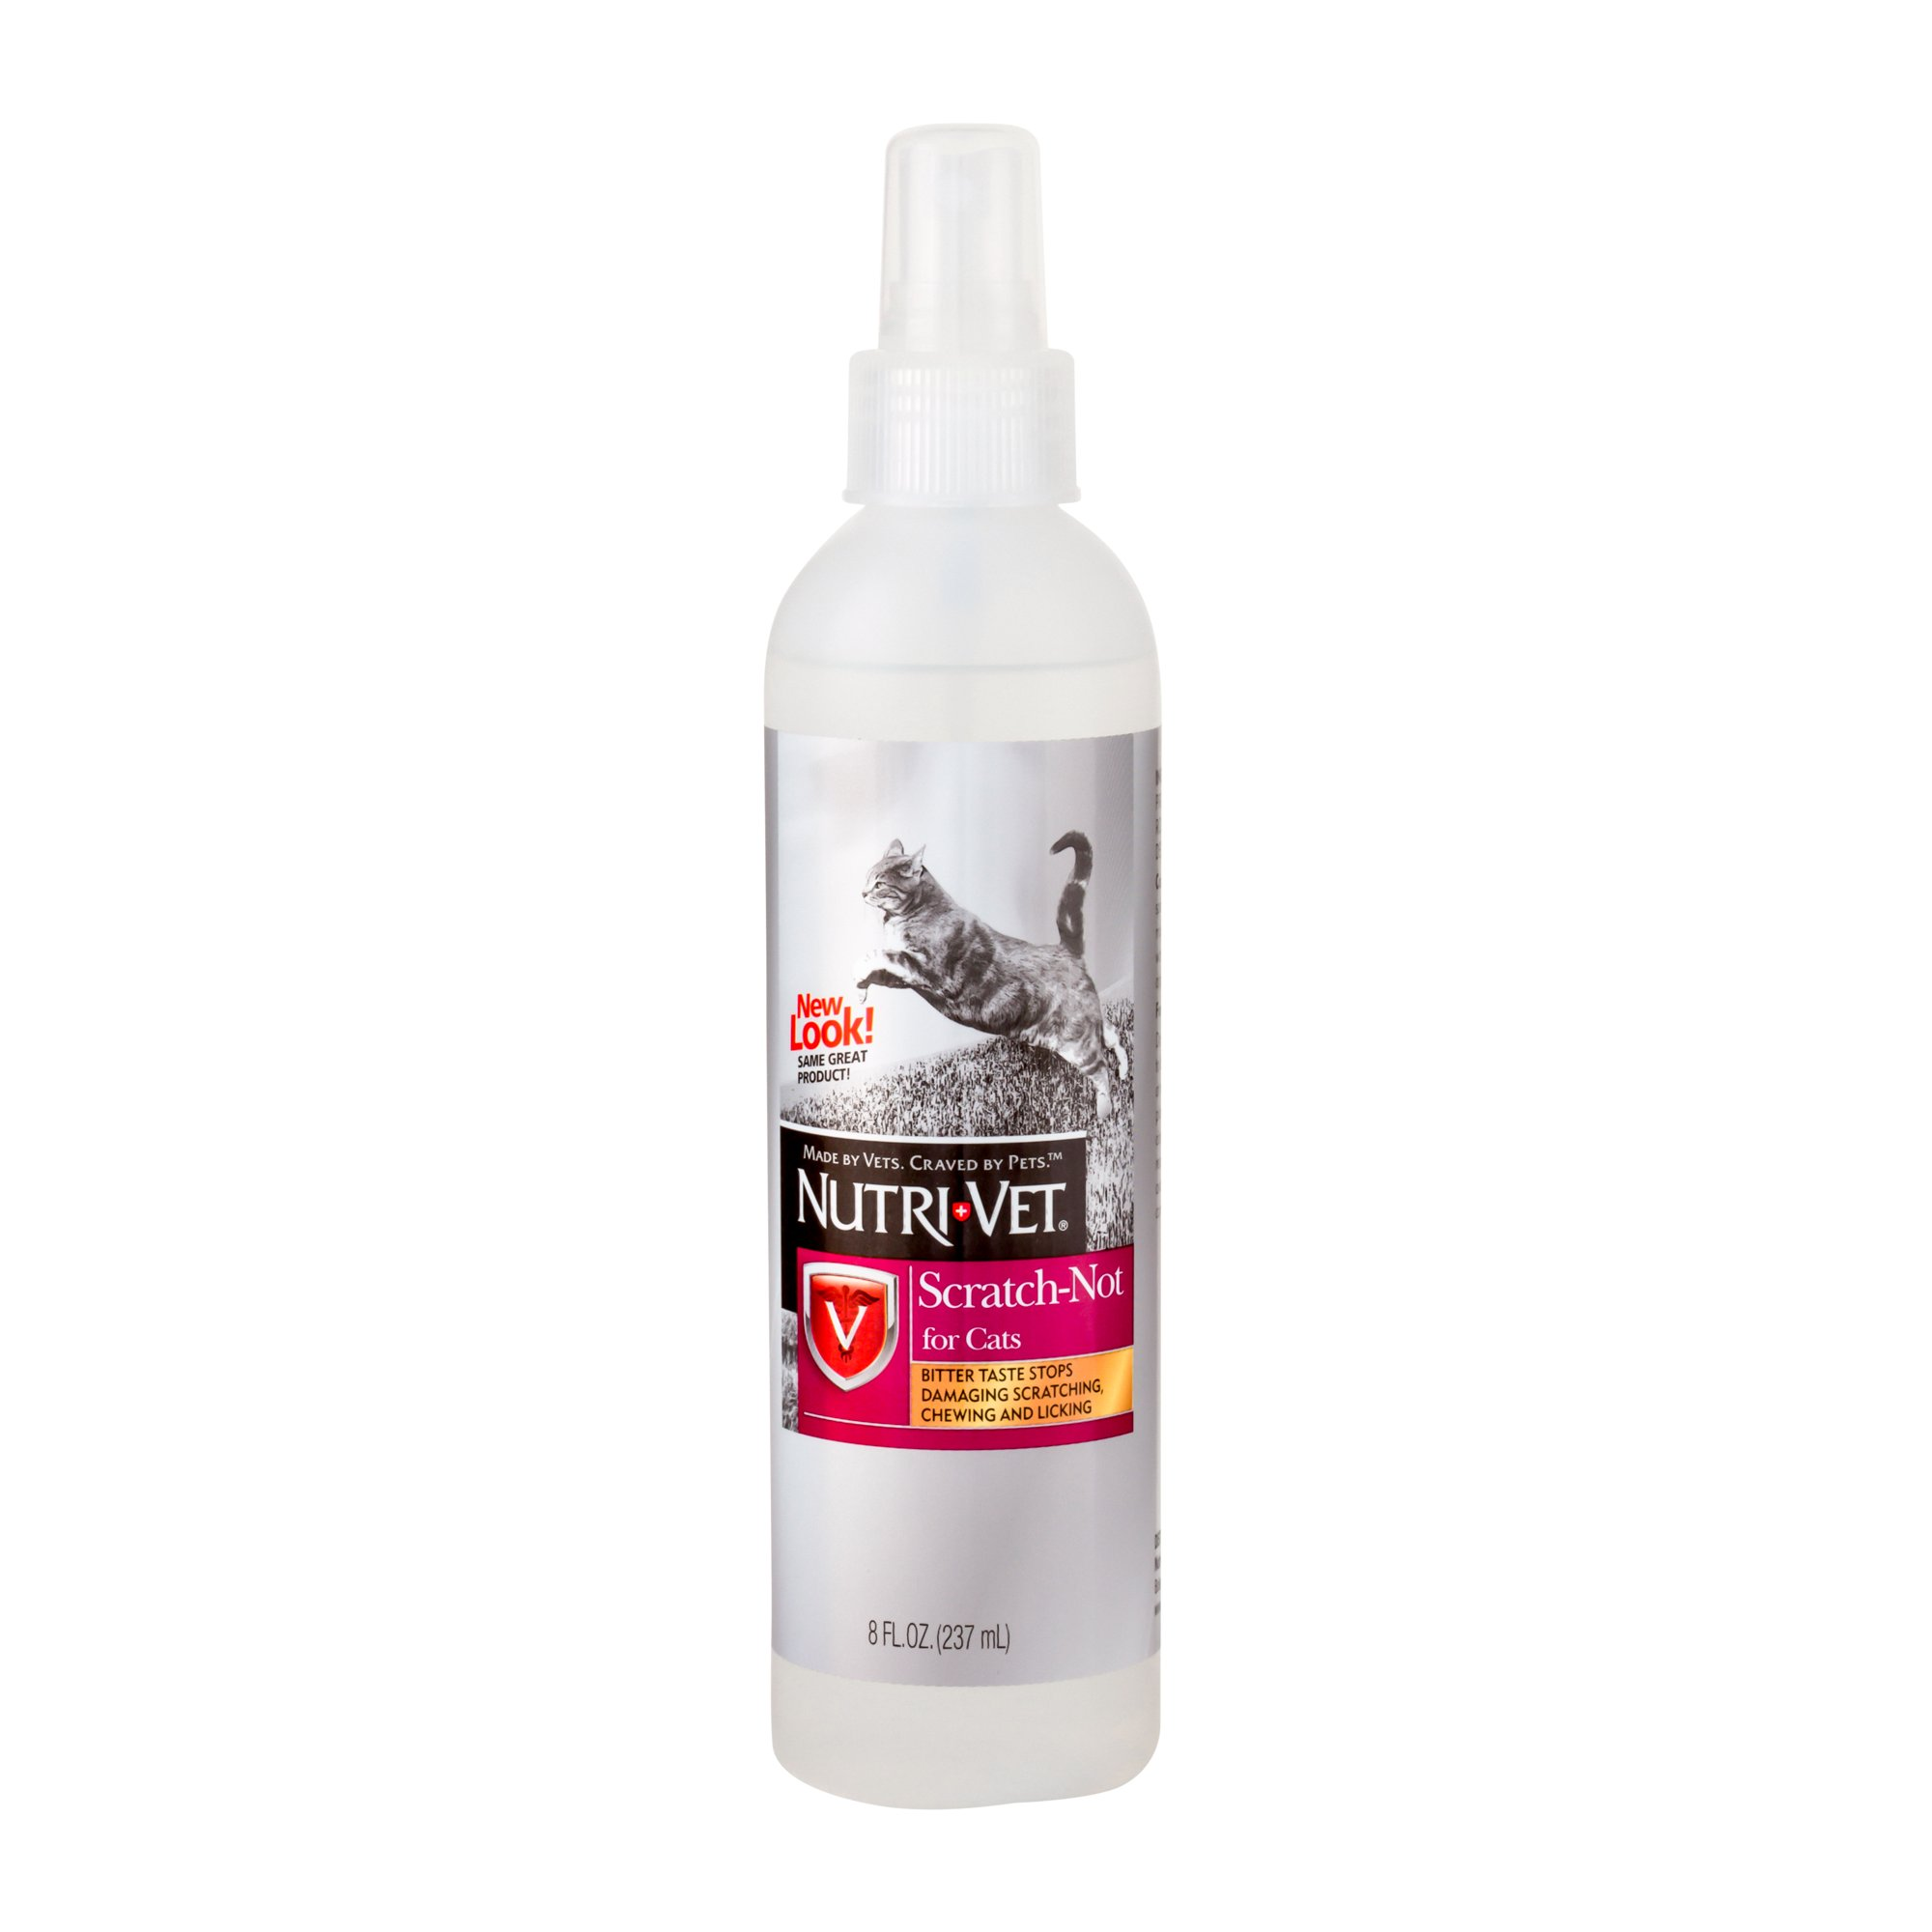 Nutri-Vet Scratch Not Cat Spray